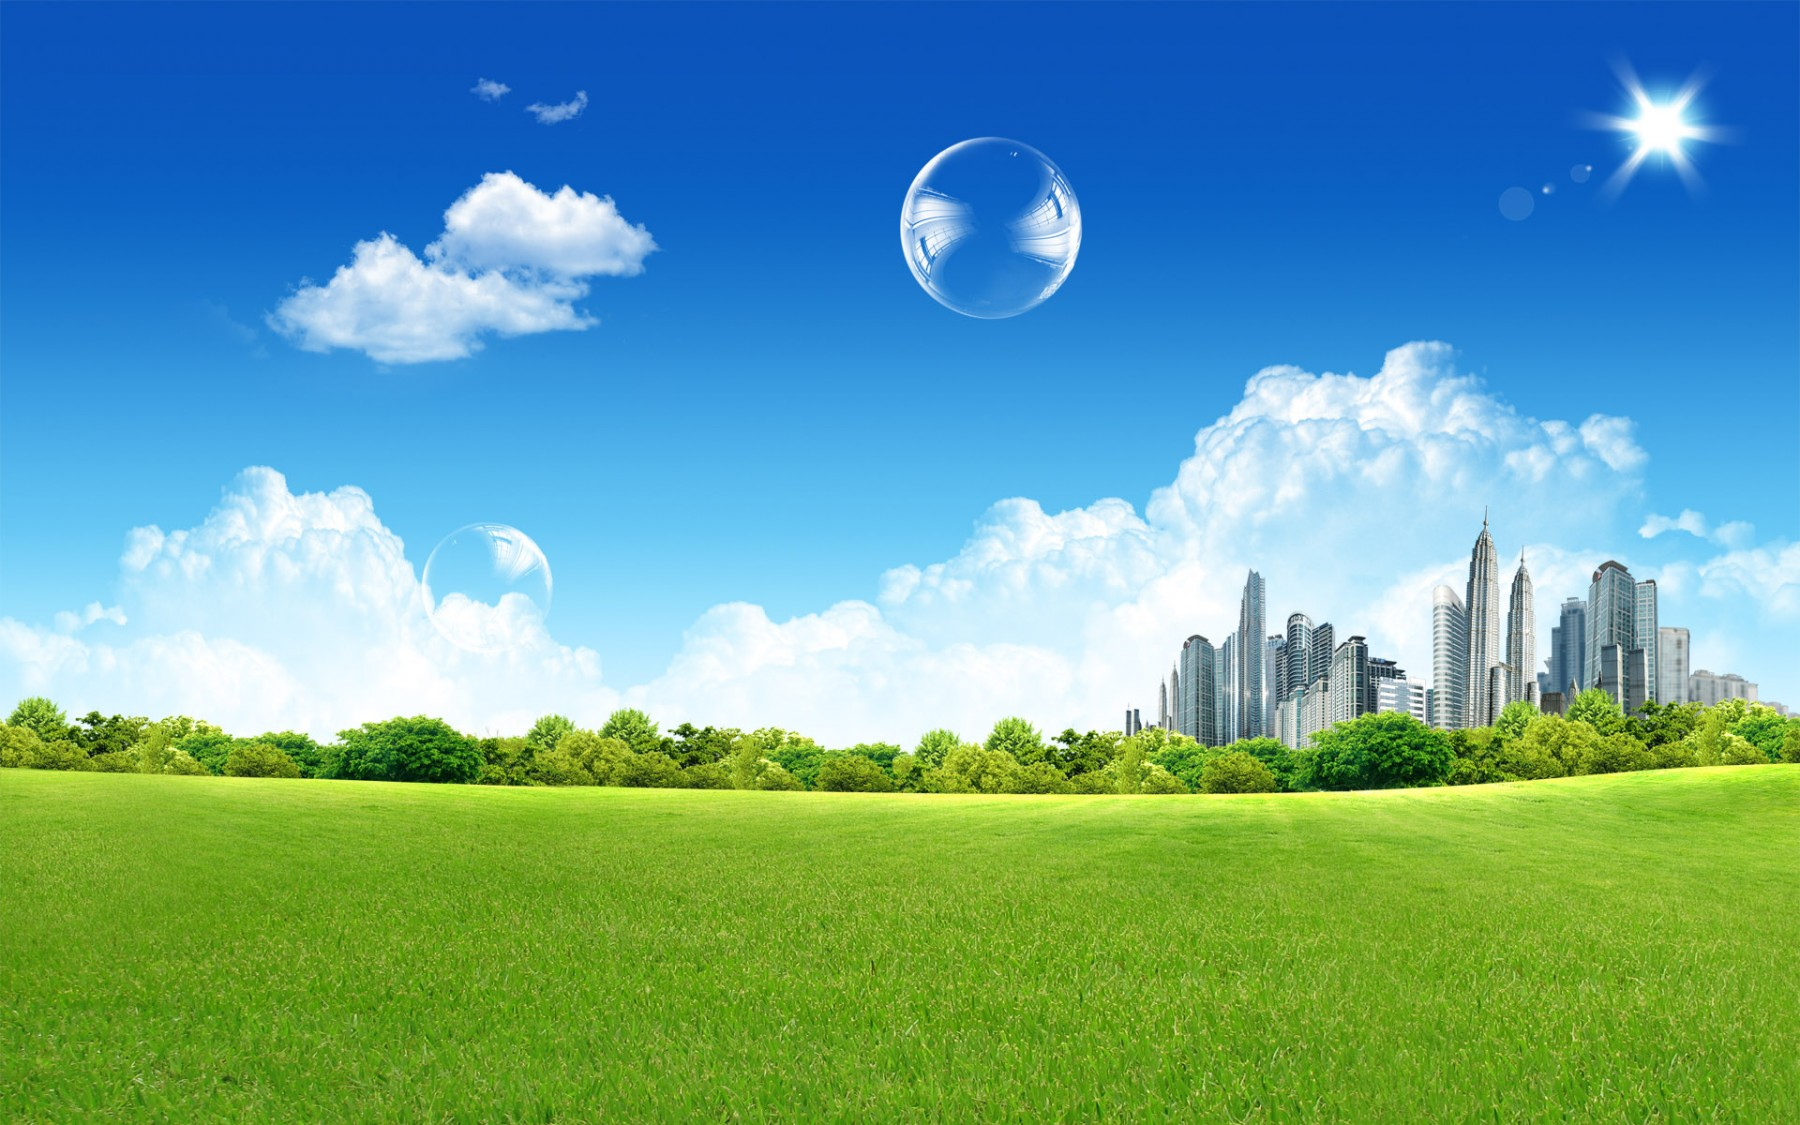 Fantasy Green City – Photography Wallpapers